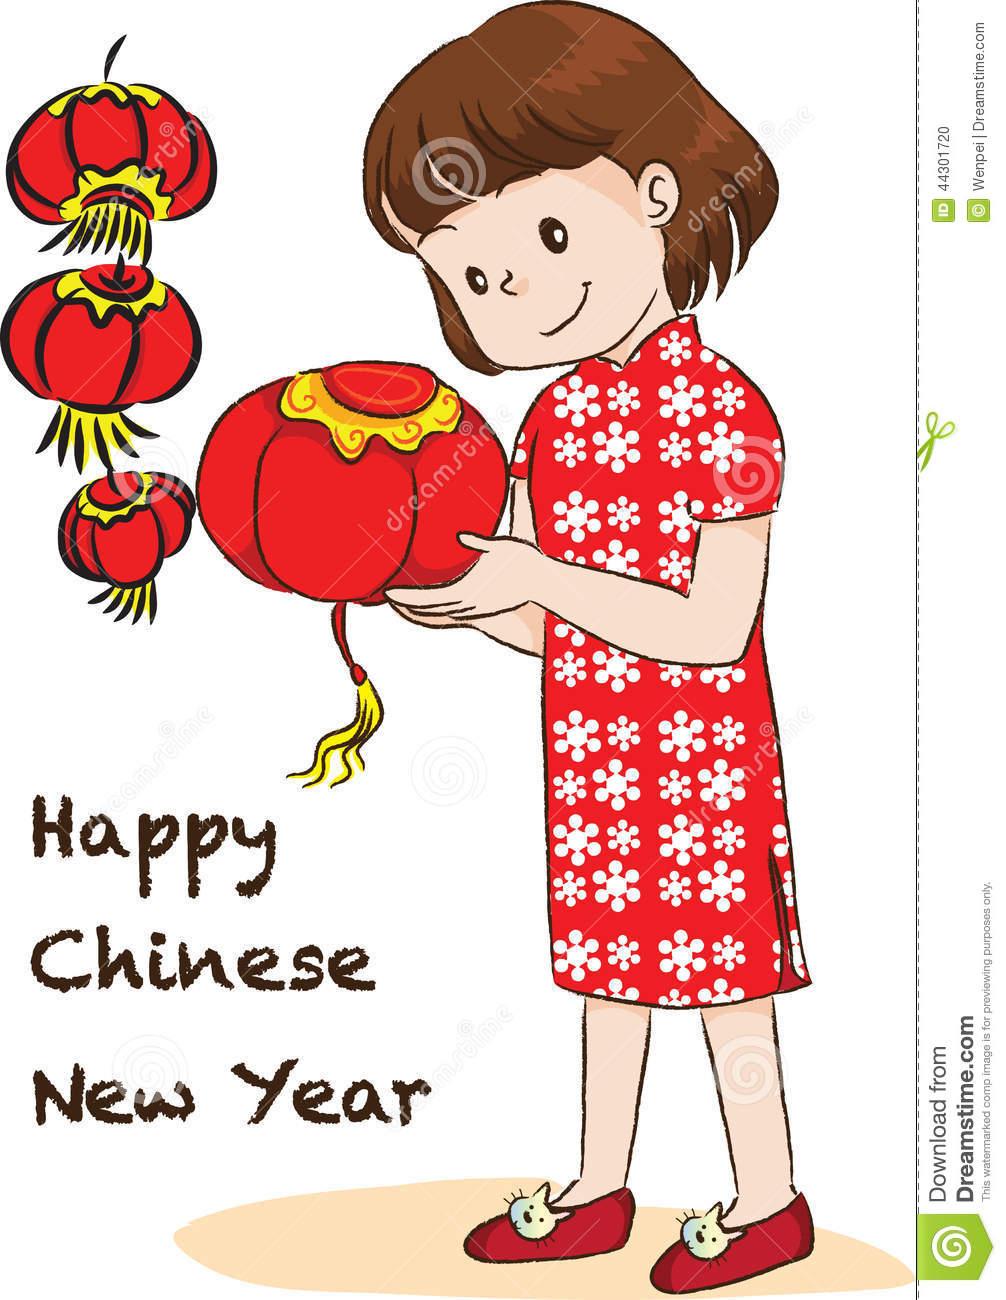 1006x1300 Chinese New Year Drawing Happy Chinese New Year Stock Illustration